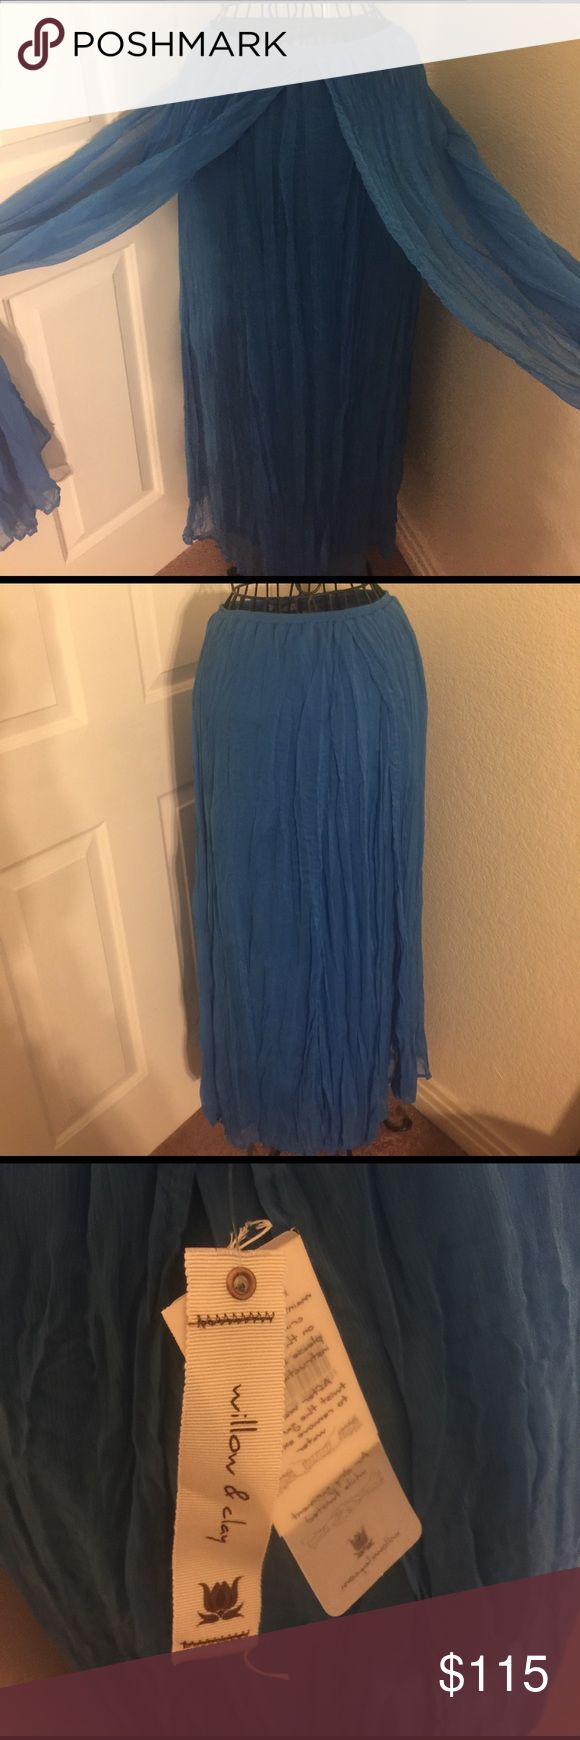 Willow & clay Bermuda blue maxi skirt Nwt willow & clay Bermuda blue skirt.  Size medium Willow & Clay Skirts Maxi